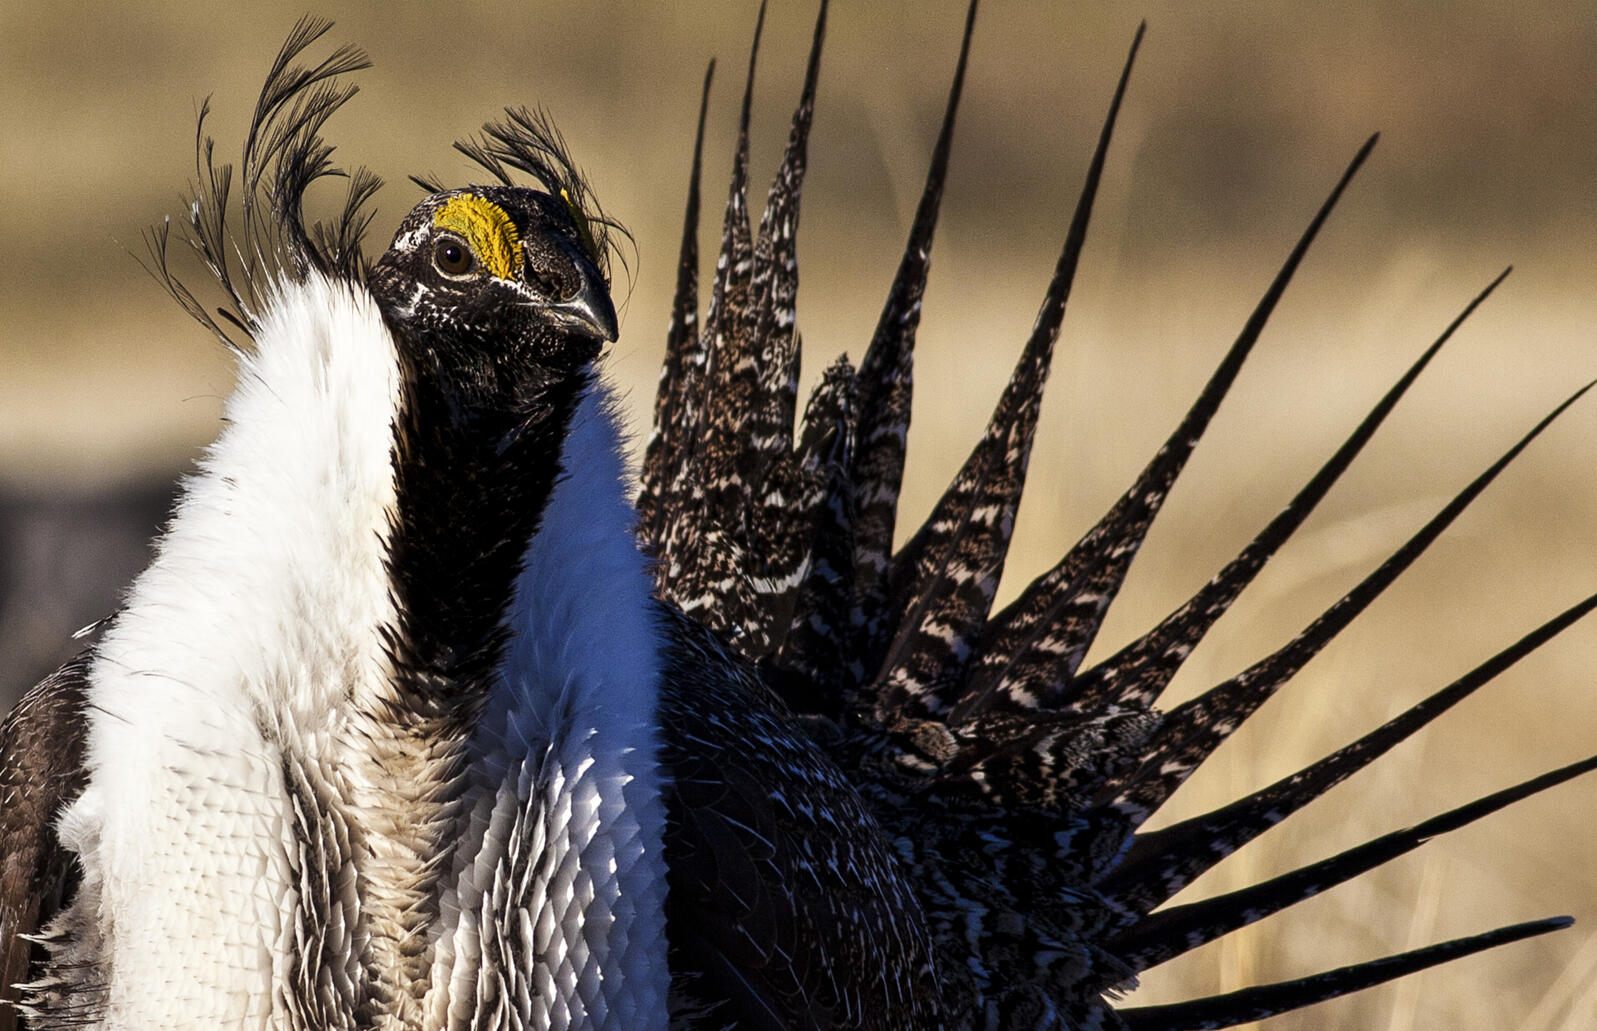 Close up photo of a Greater Sage-Grouse. We are working to keep a harmful rider that would impact efforts to save Greater Sage-Grouse out of the final defense bill. Bob Wick/BLM